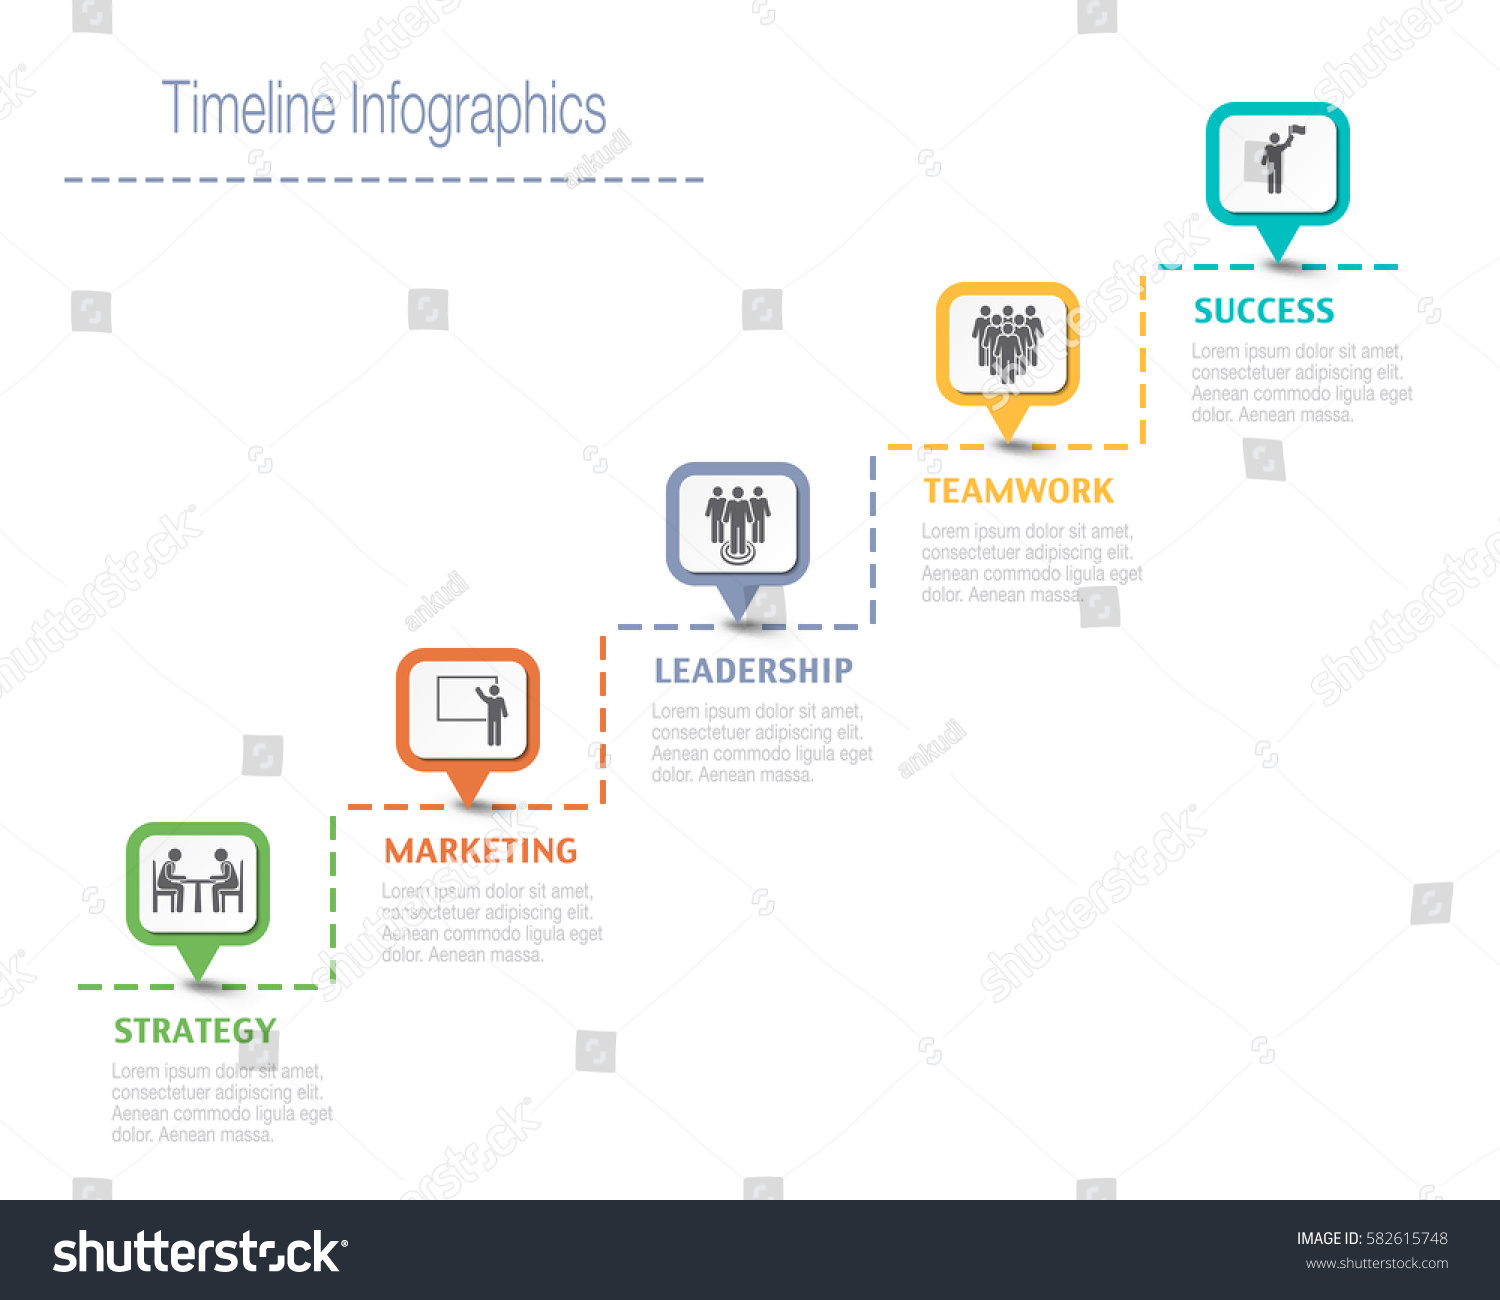 business overview visualization timeline infographic data stock